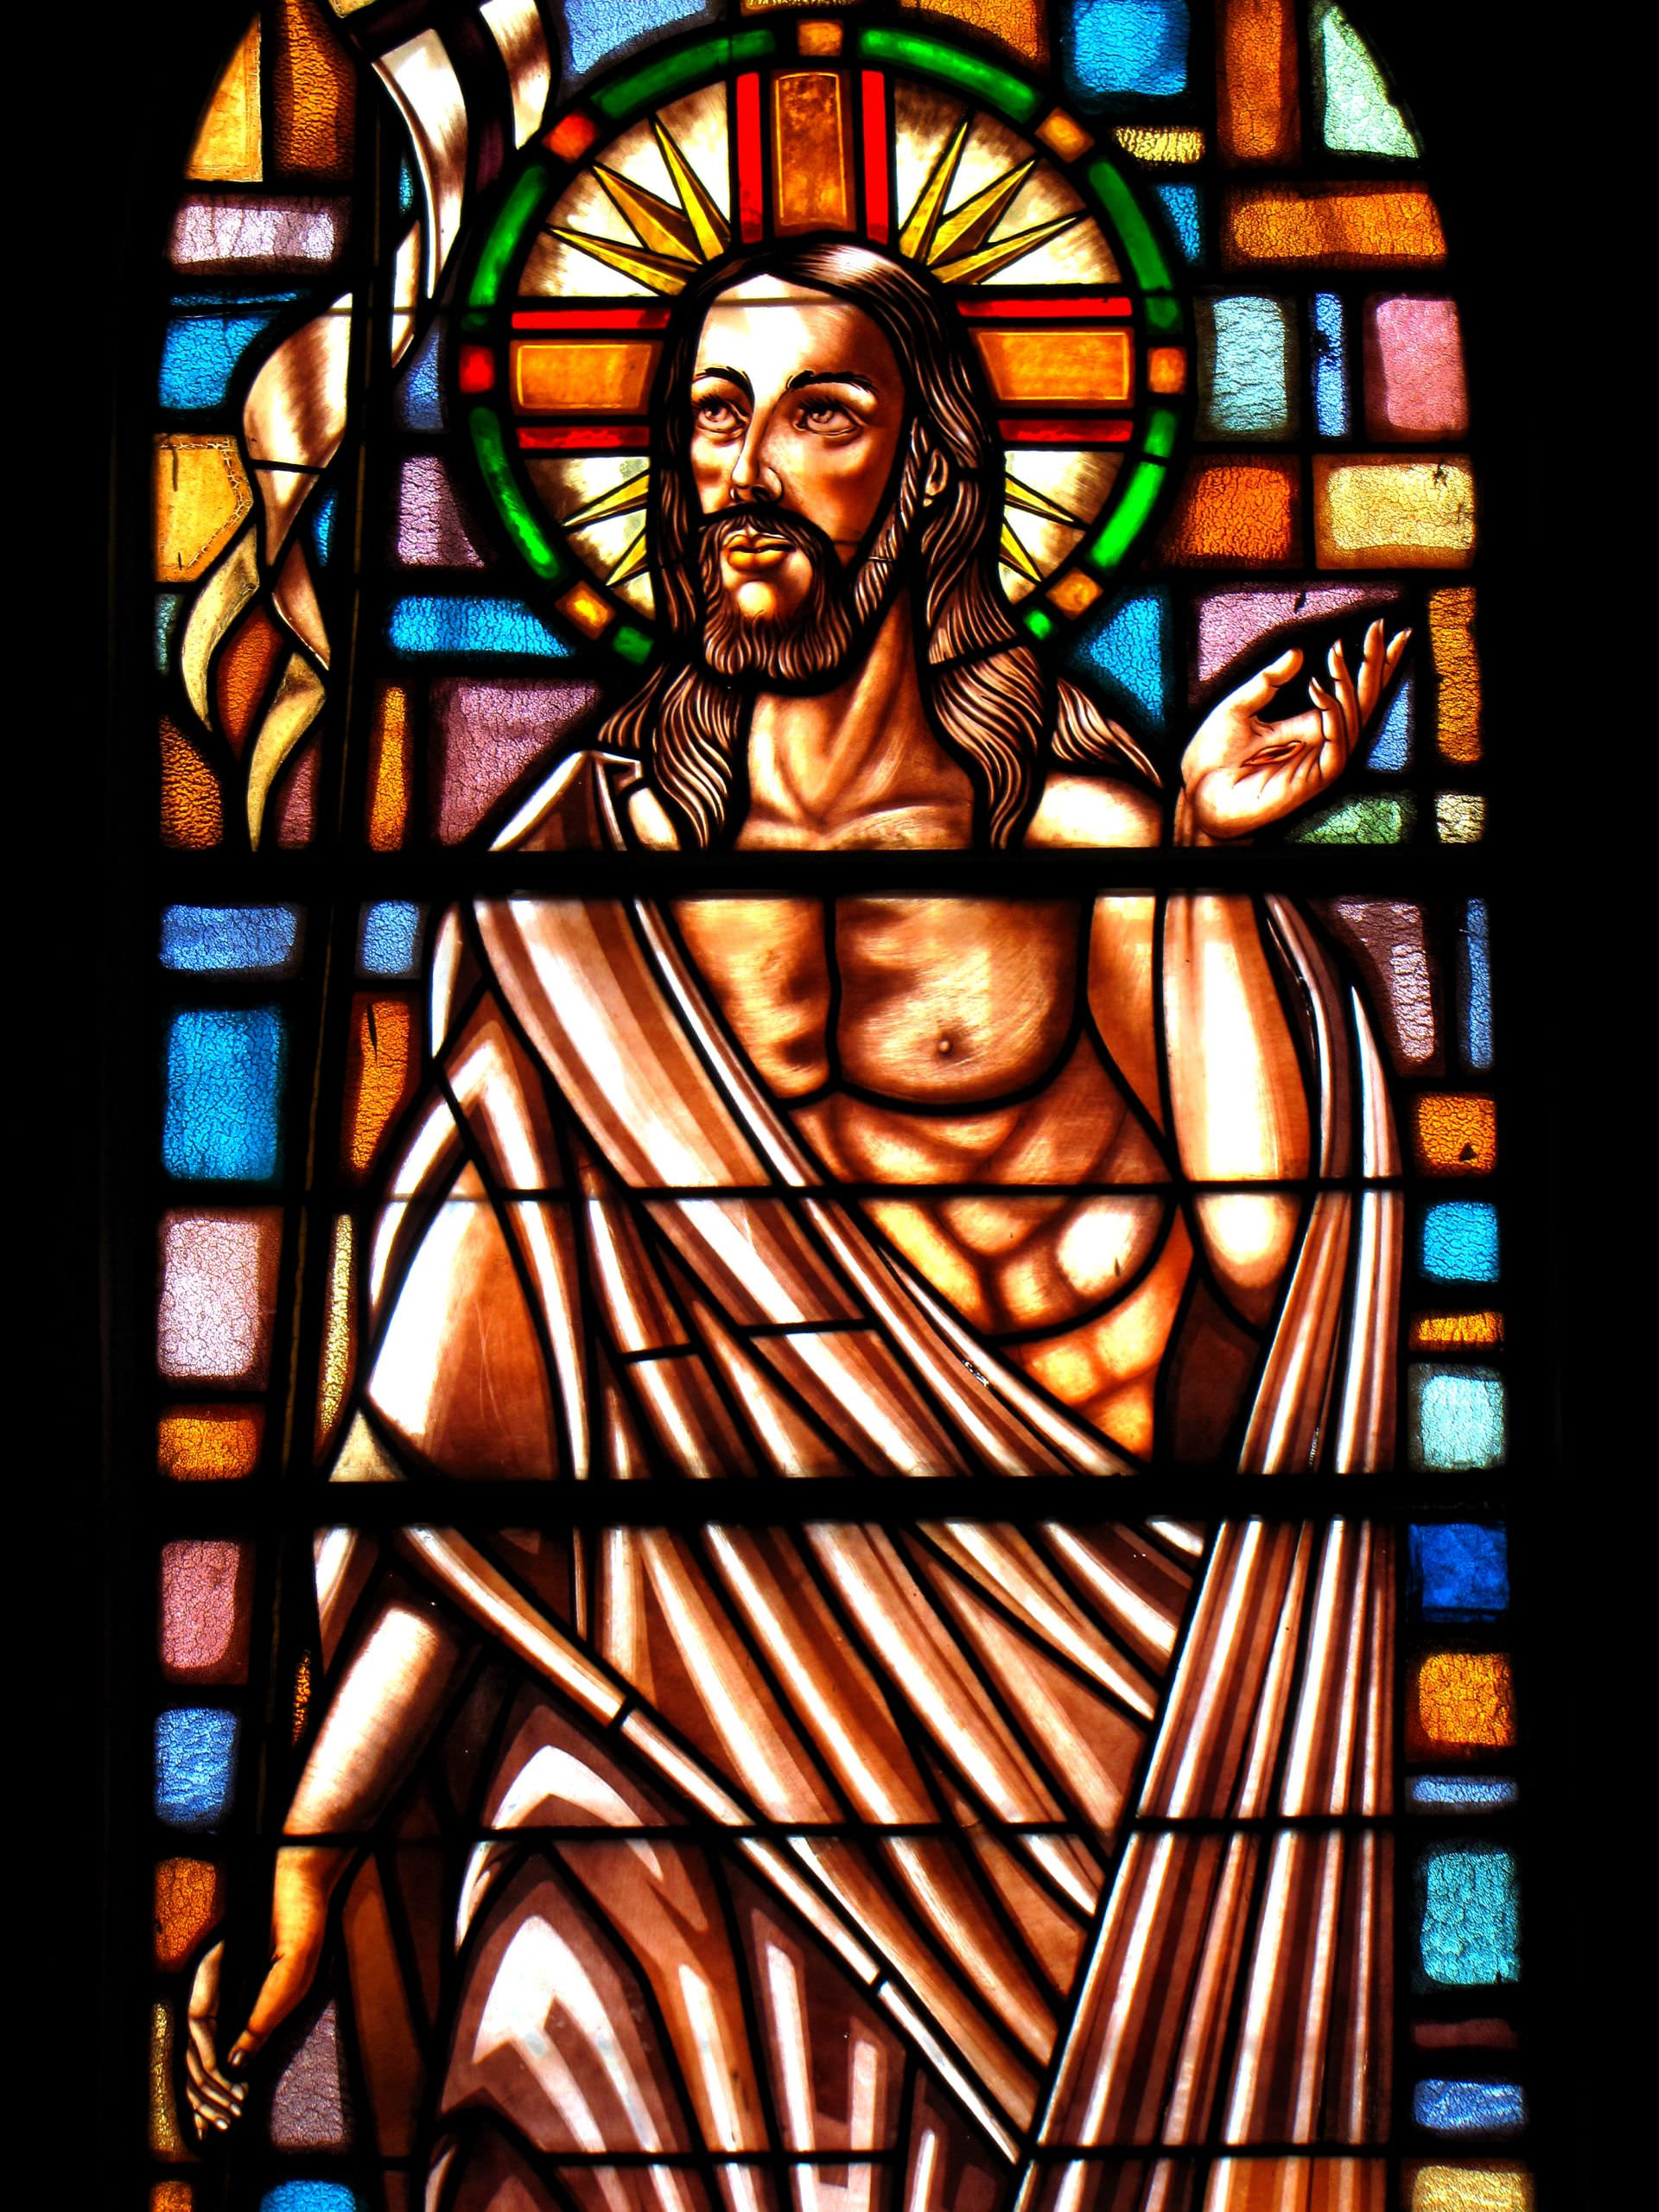 jesus, jesus, stained glass, art, sacred, resurrected, victoria, resurrection, senor, son of god, christ, salvador, redeemer, king, messiah